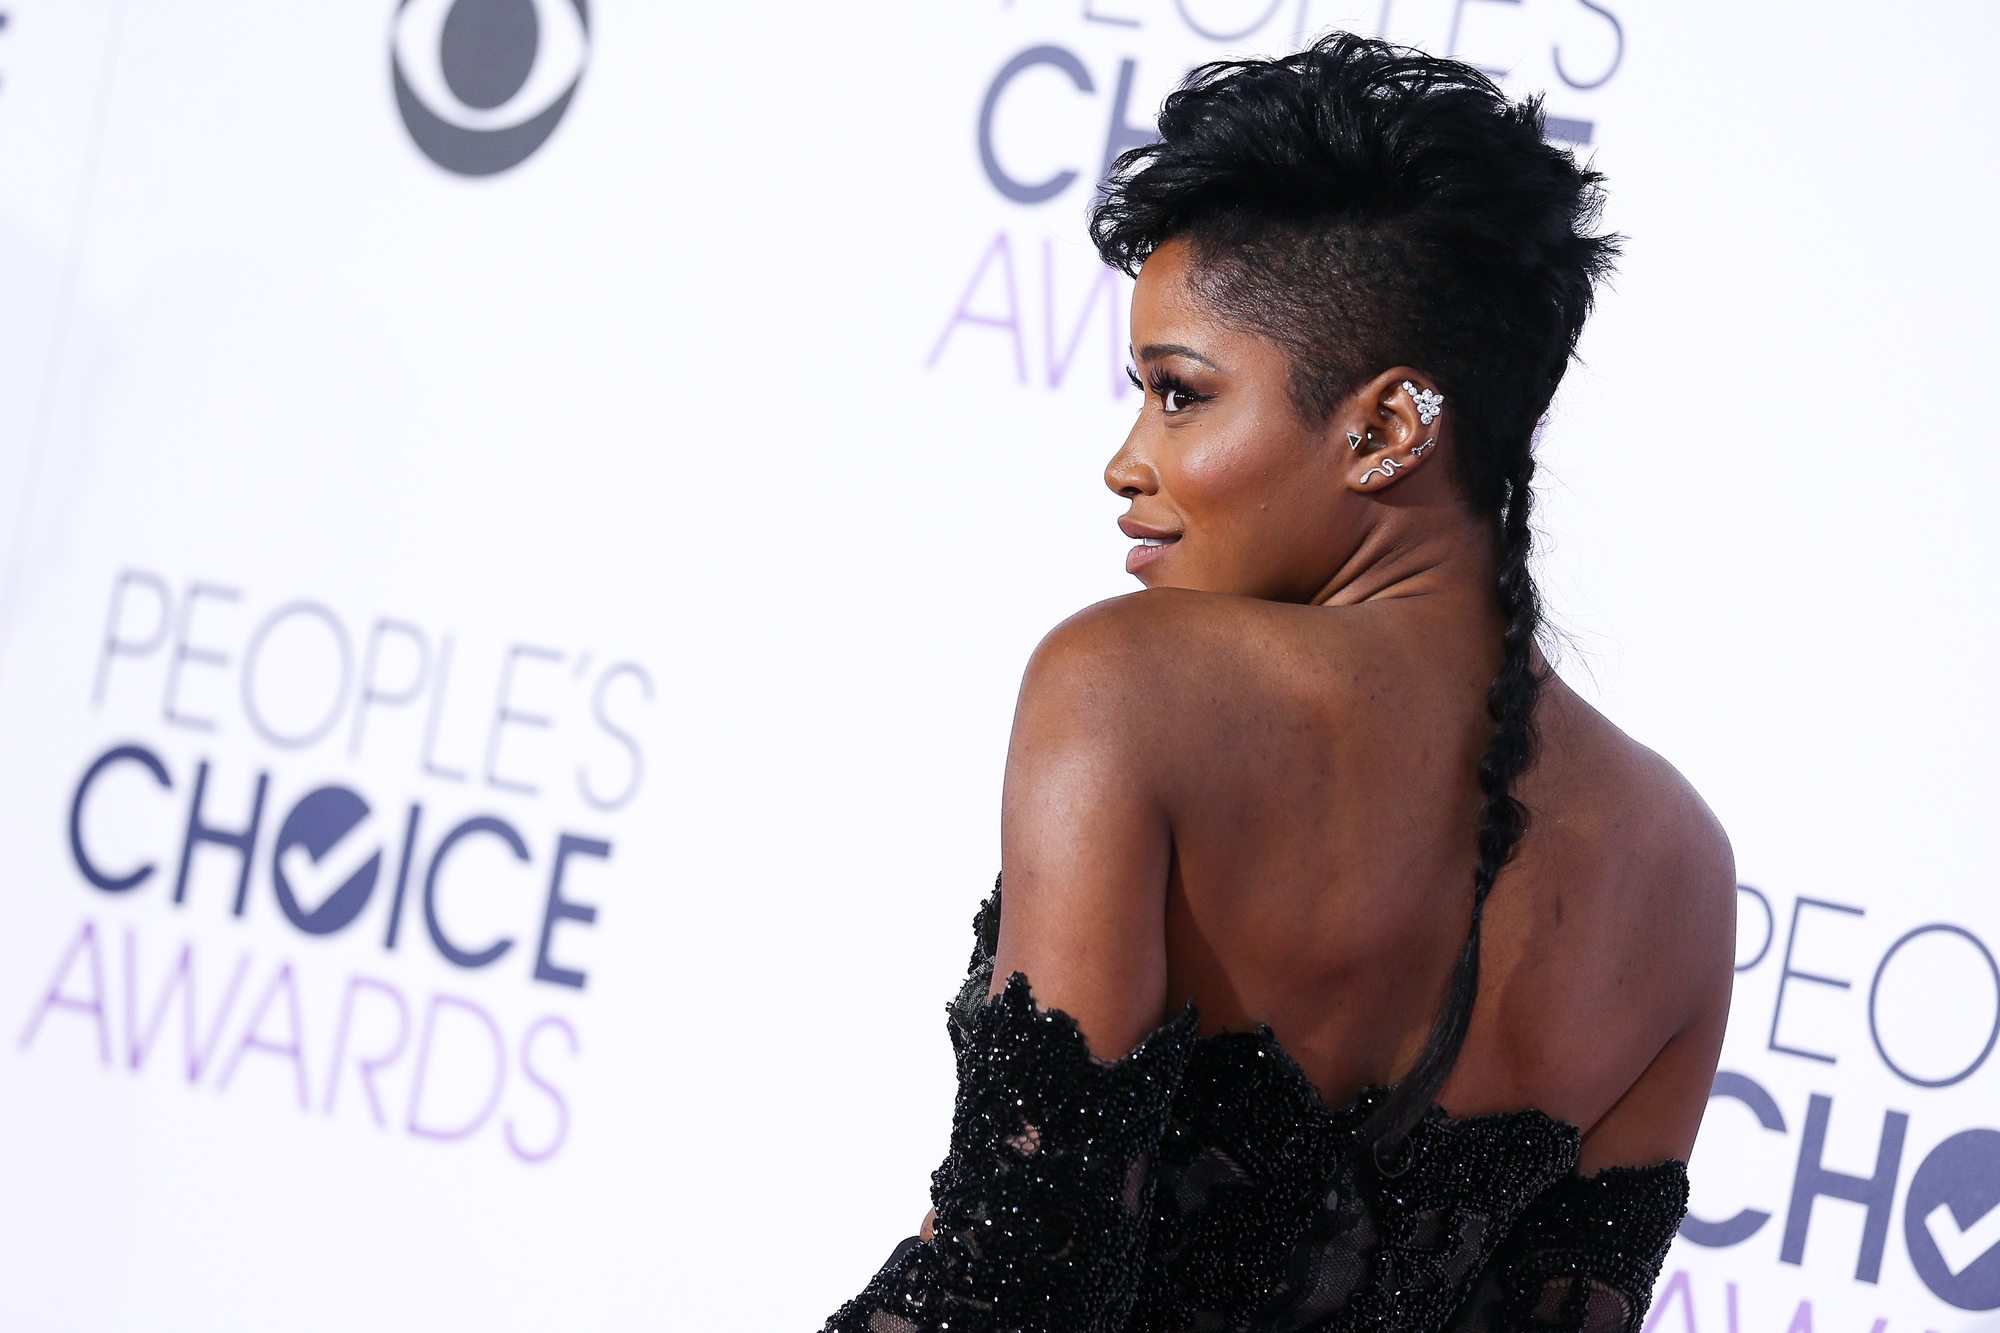 keke palmer on the red carpet with a mohawk hairstyles with shaved sides with a mullet braid